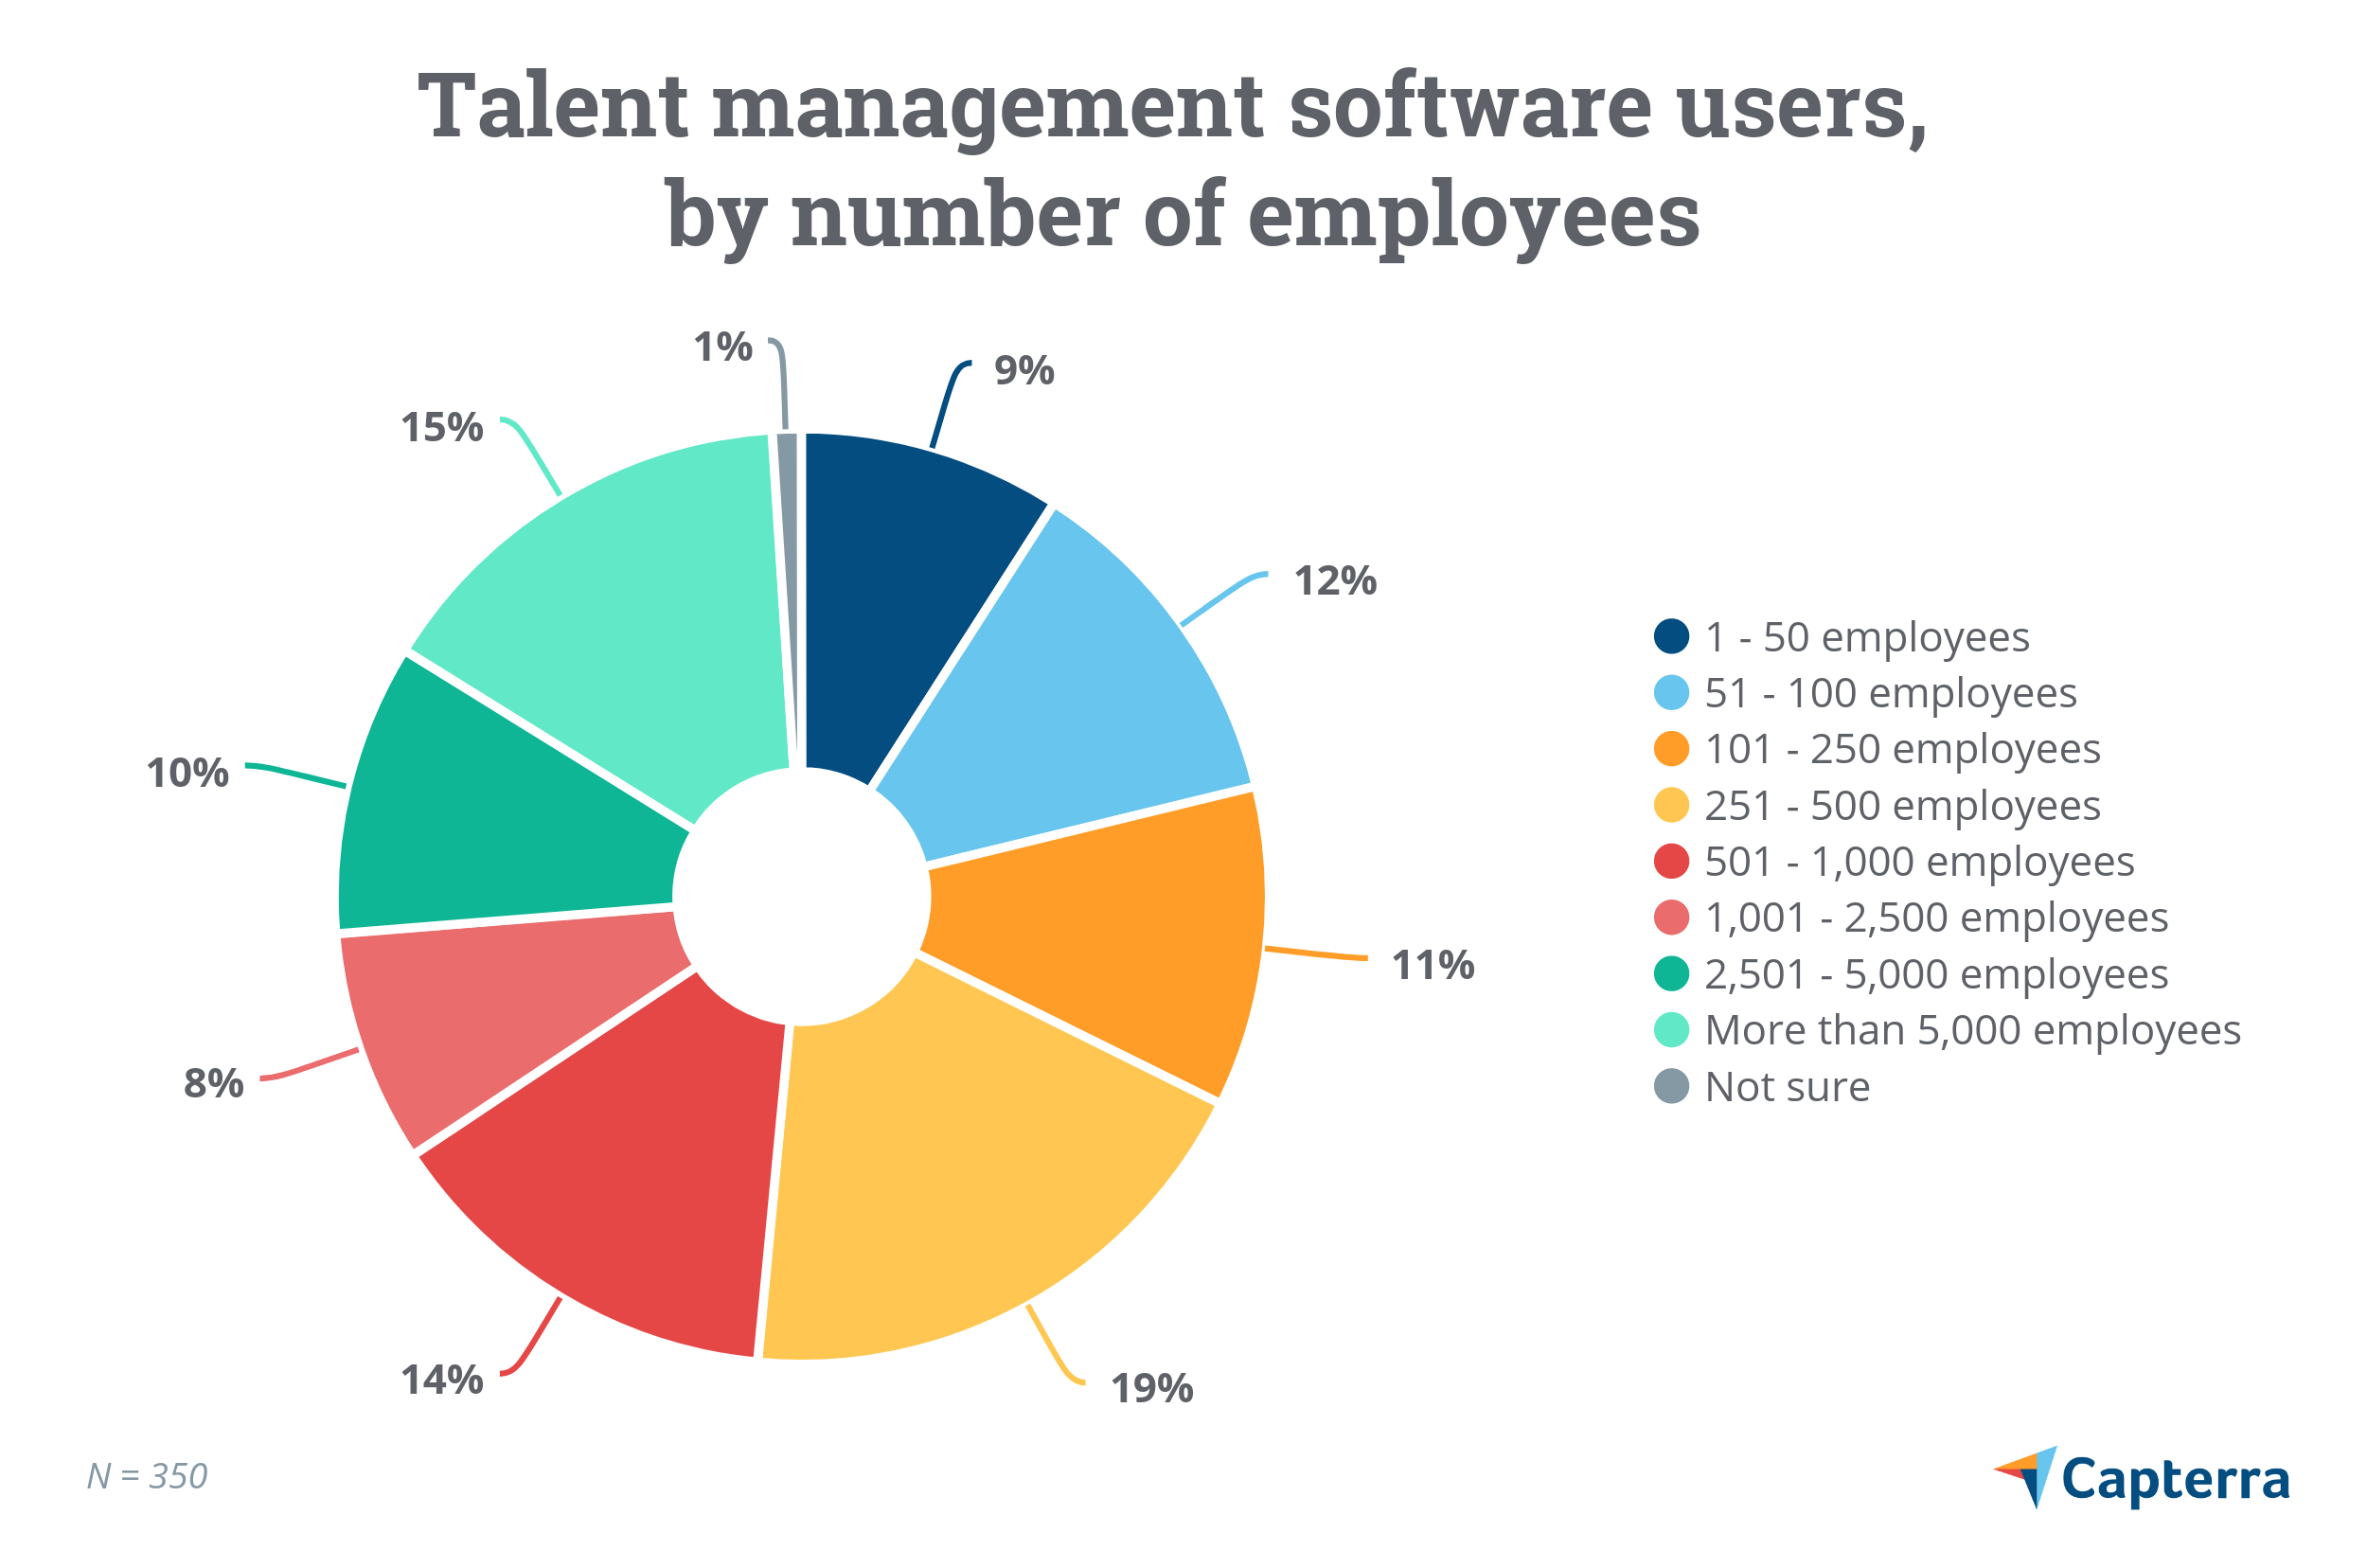 Talent management software users by number of employees